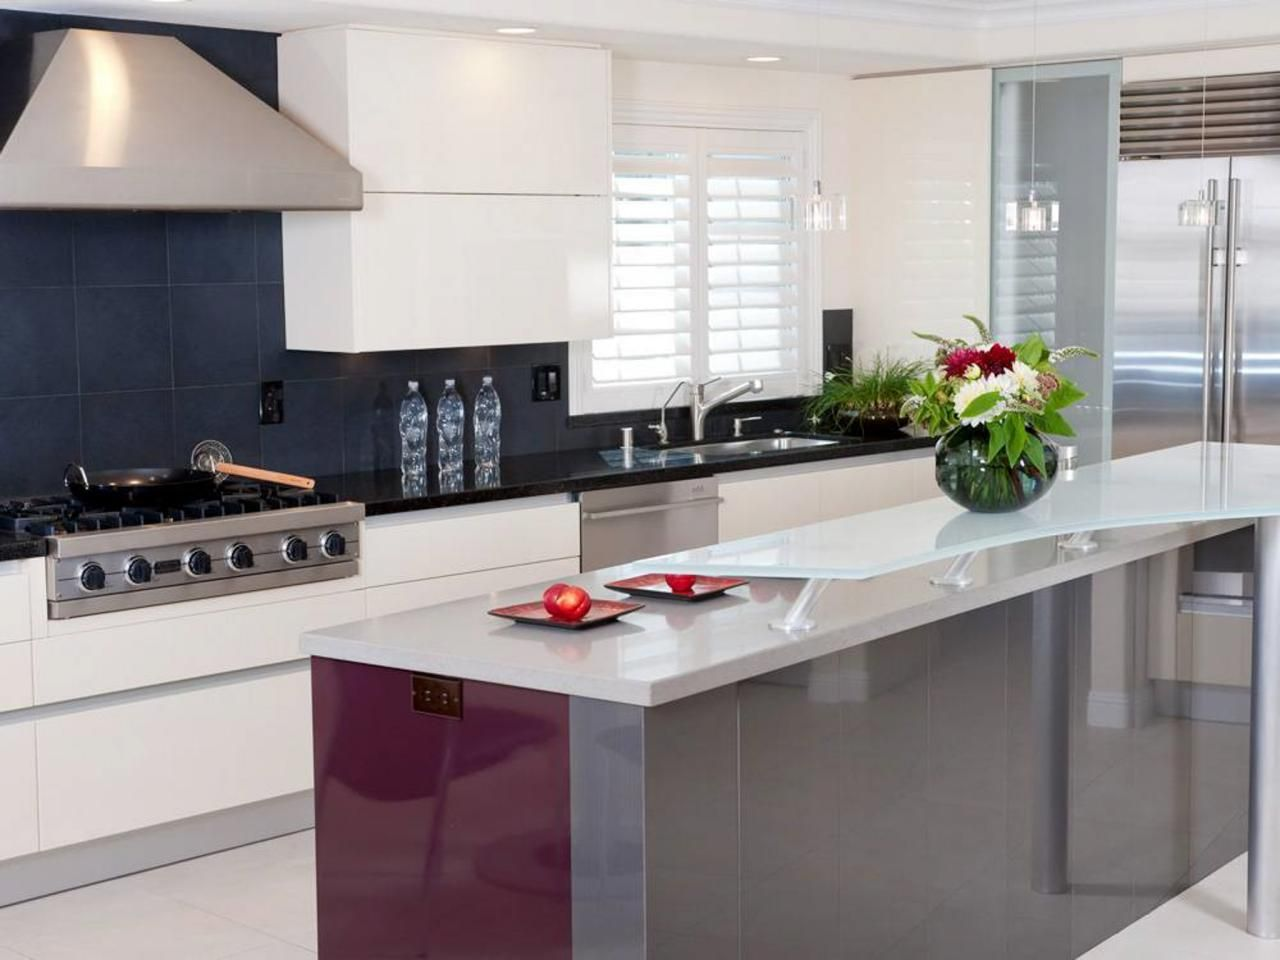 HGTV.com Has Inspirational Pictures, Ideas And Expert Tips On Modern Kitchen  Design To